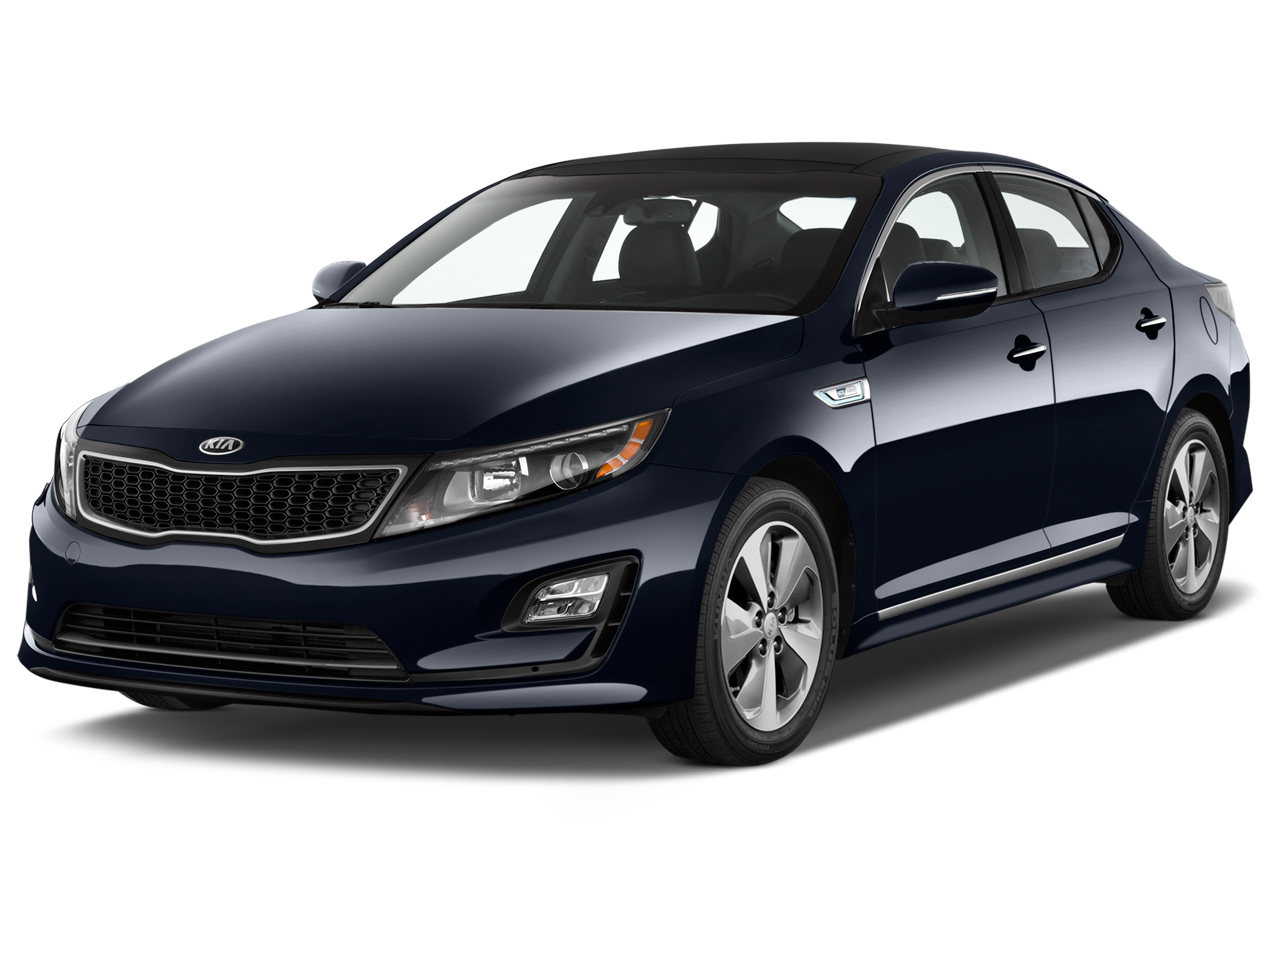 2015 kia optima hybrid review ratings specs prices and photos the car connection. Black Bedroom Furniture Sets. Home Design Ideas